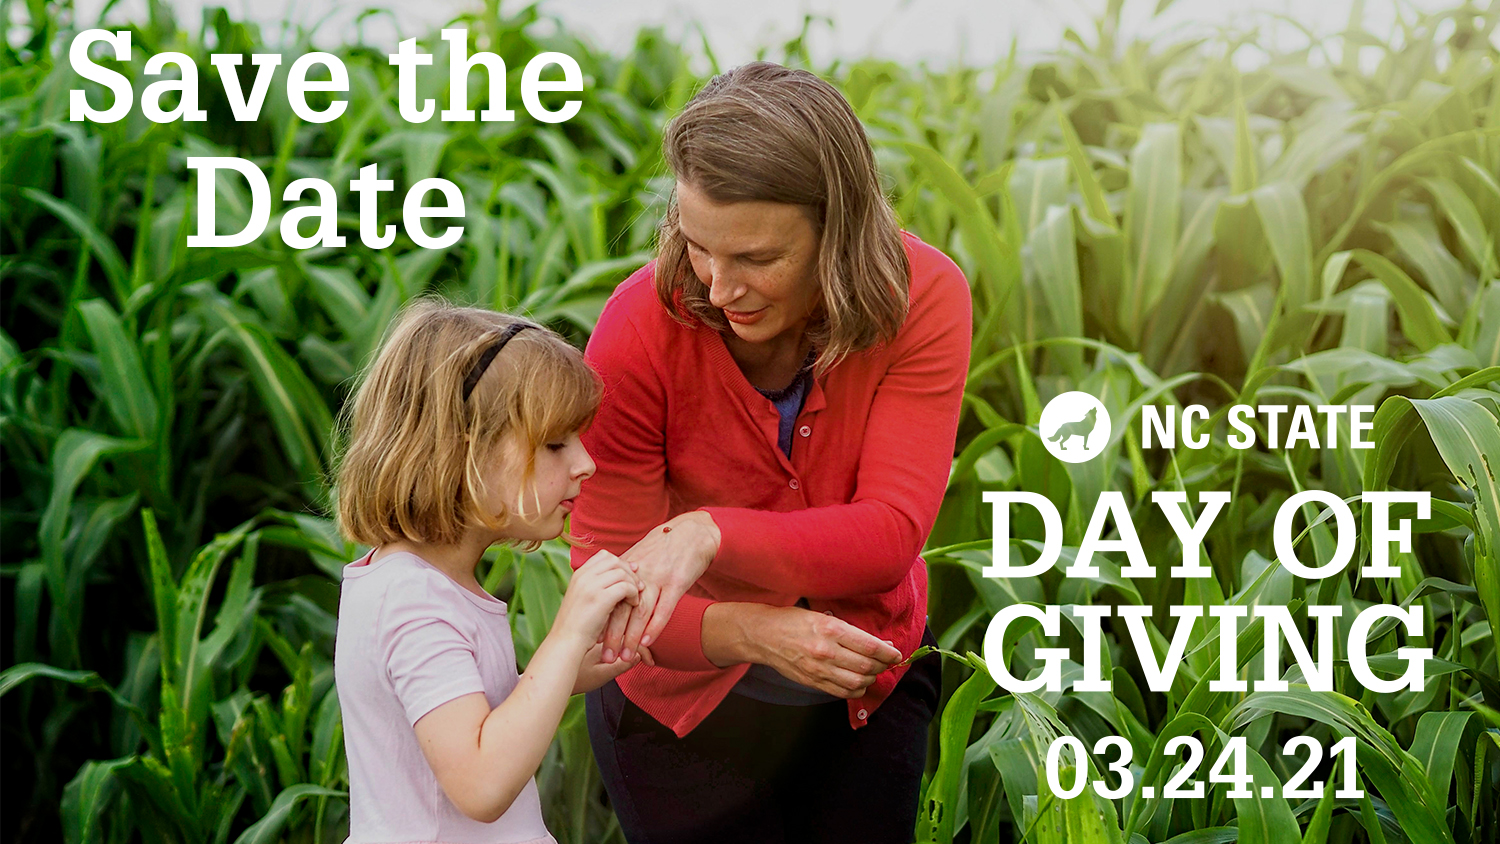 Save the Date for NC State Day of Giving 3.24.2021 text over image of white female scientist and small child in front of corn field